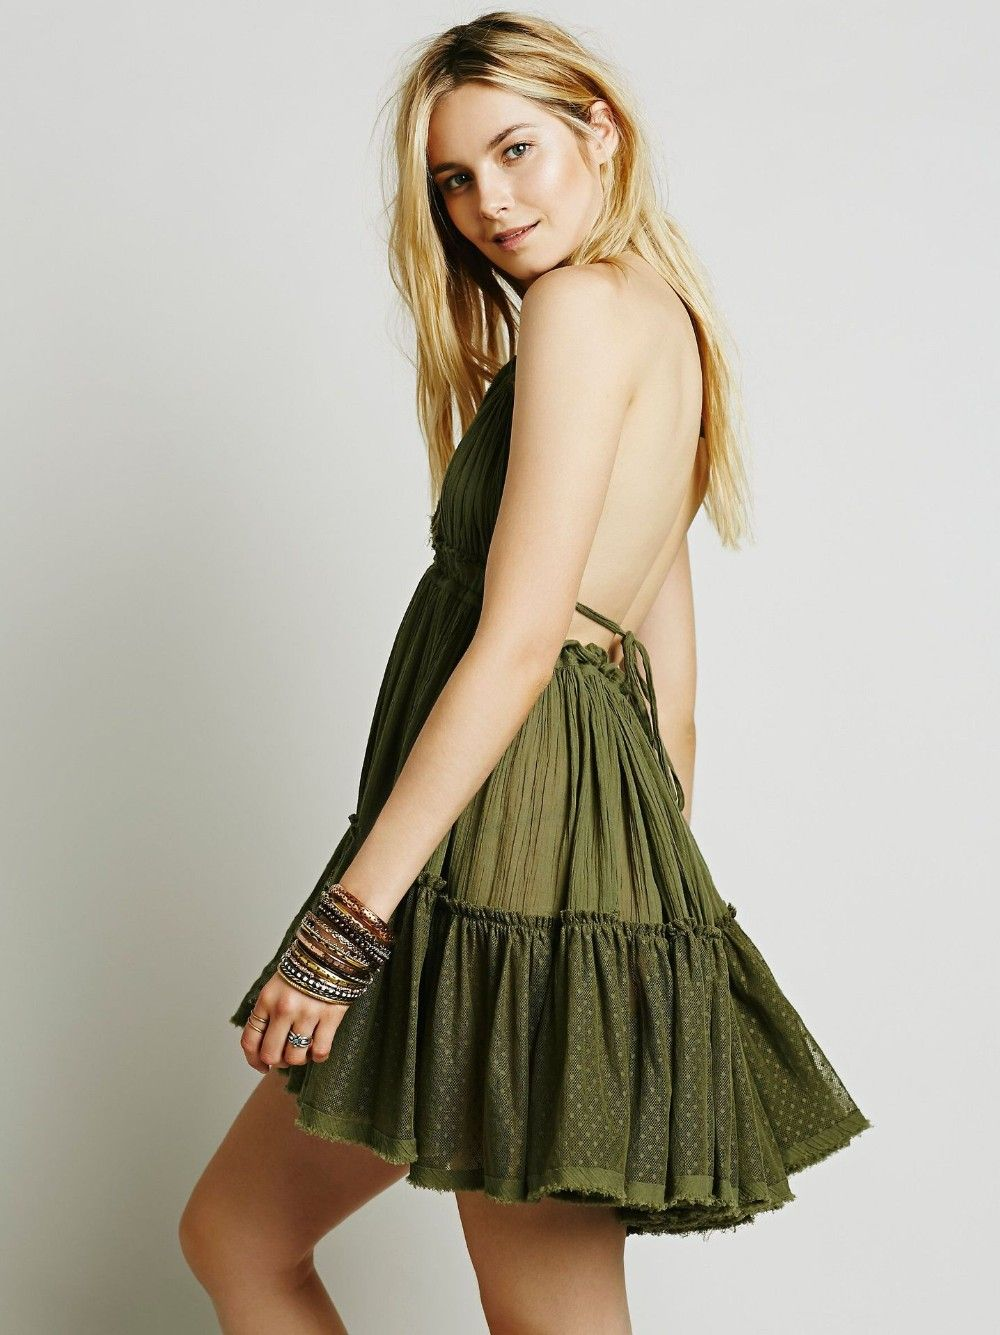 Backless beach lace strapless short pleated cute dress uniqistic